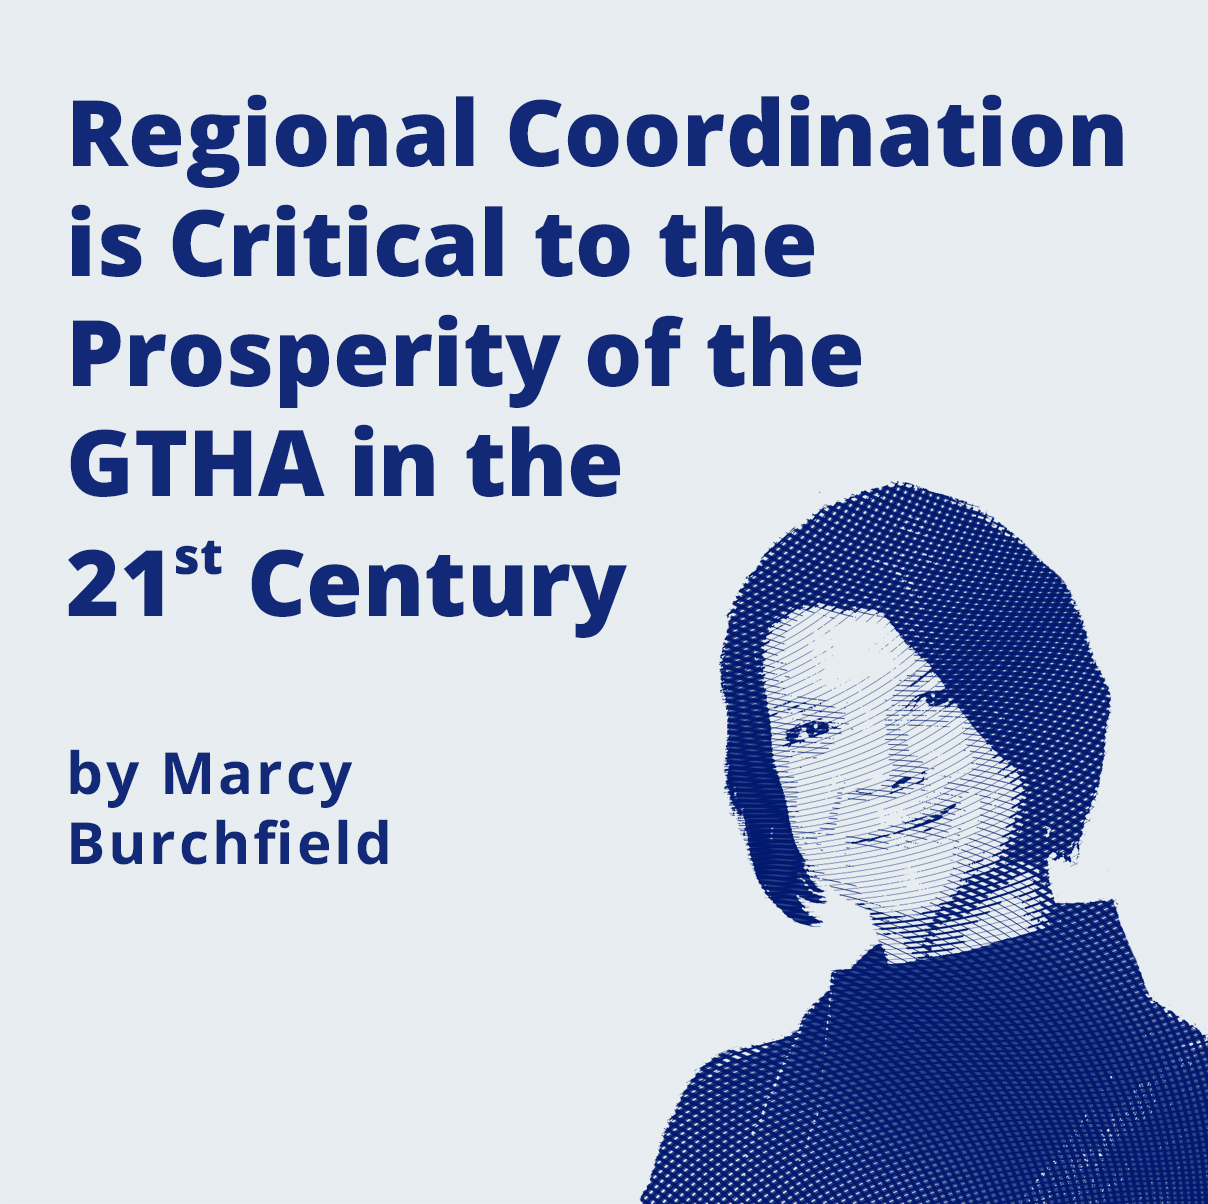 Regional Coordination is Critical to the Prosperity of the GTHA in the 21st Century by Marcy Burchfield